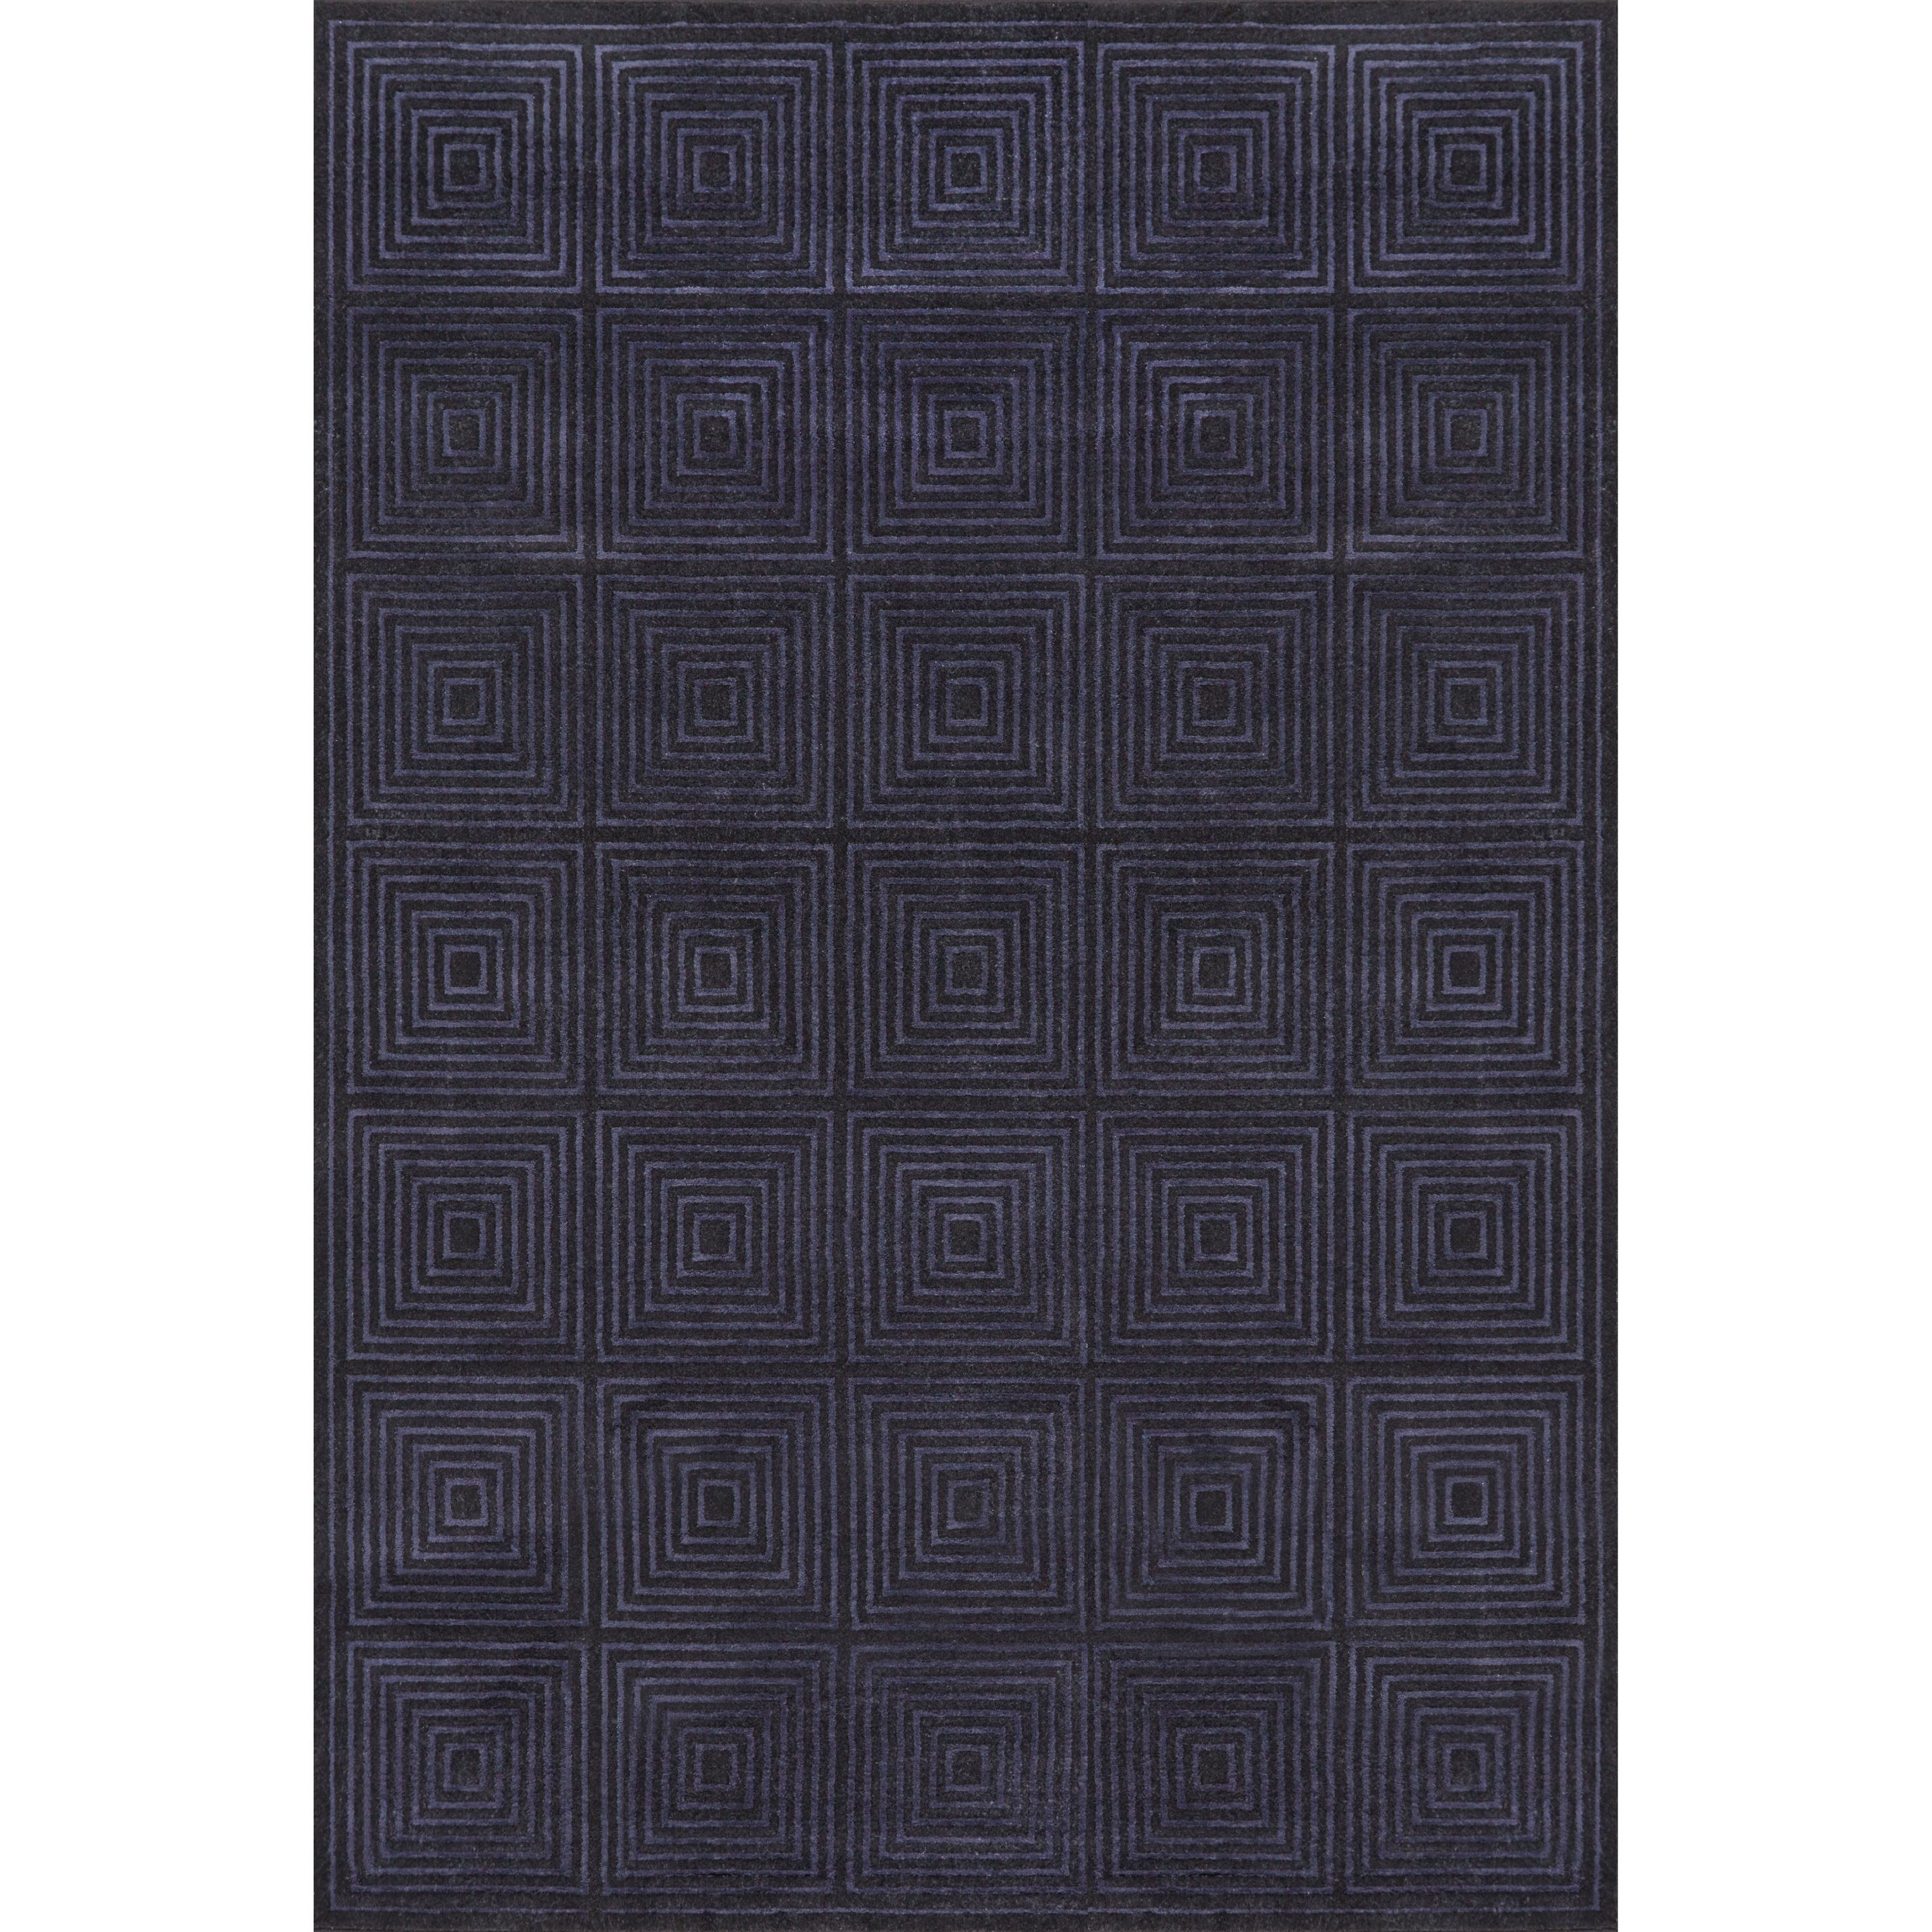 """Azeri Black/Charcoal 7'-10"""" x 11' Area Rug by Feizy Rugs at Sprintz Furniture"""